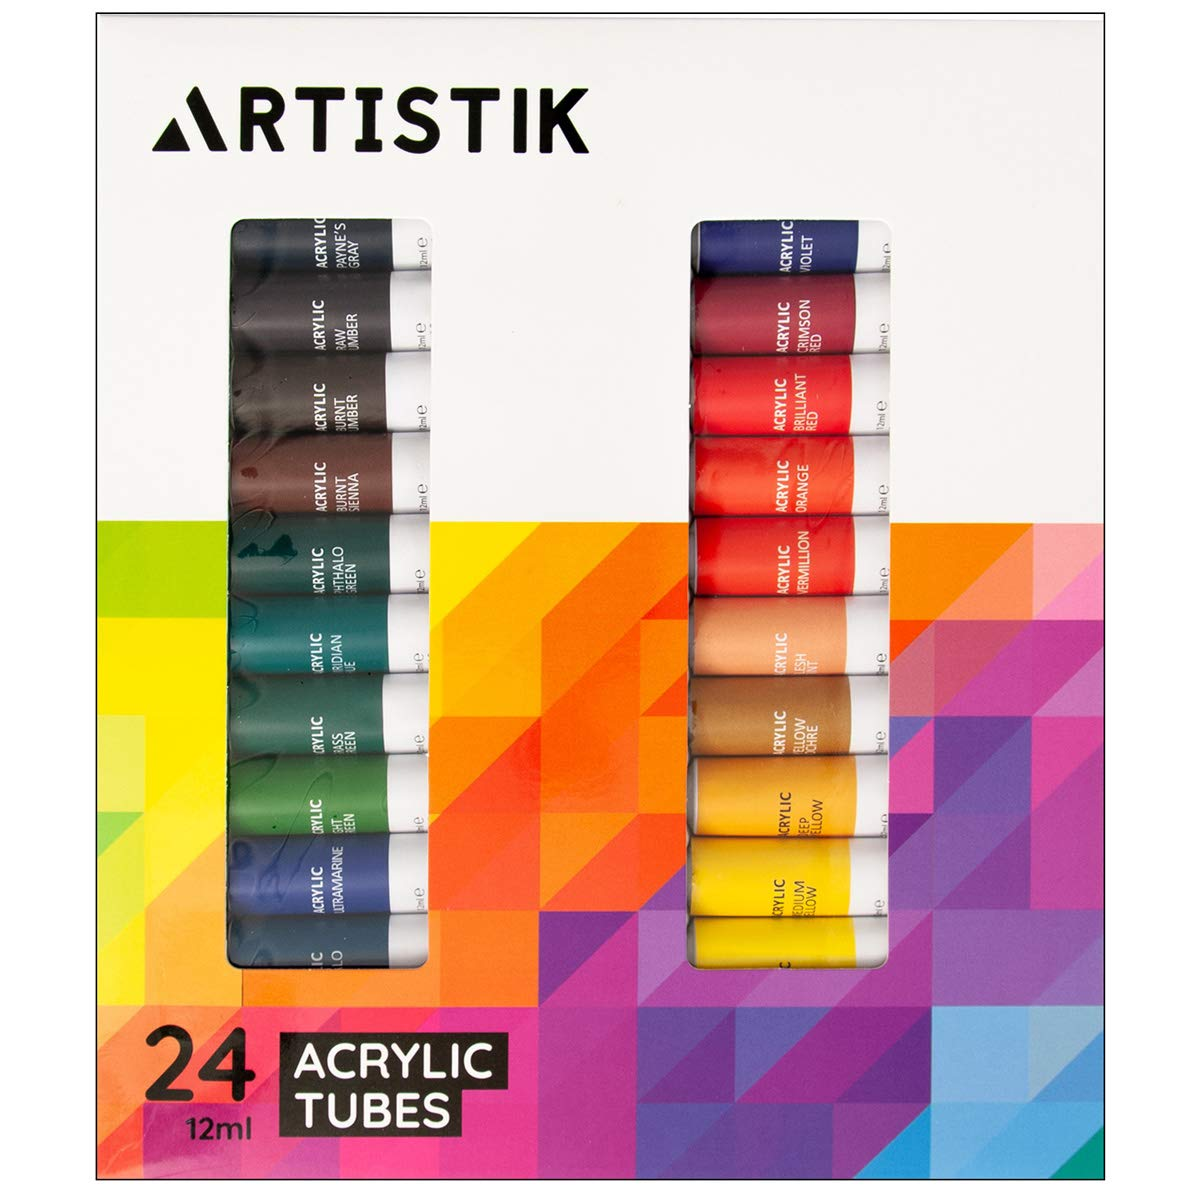 Acrylic Paint Set - 24 Piece Set of Professional Painting Acrylic Paints with Vivid Pigments and Rich Colours Perfect for Any Age and Skill Level (Set of 24 Tubes) Artistik